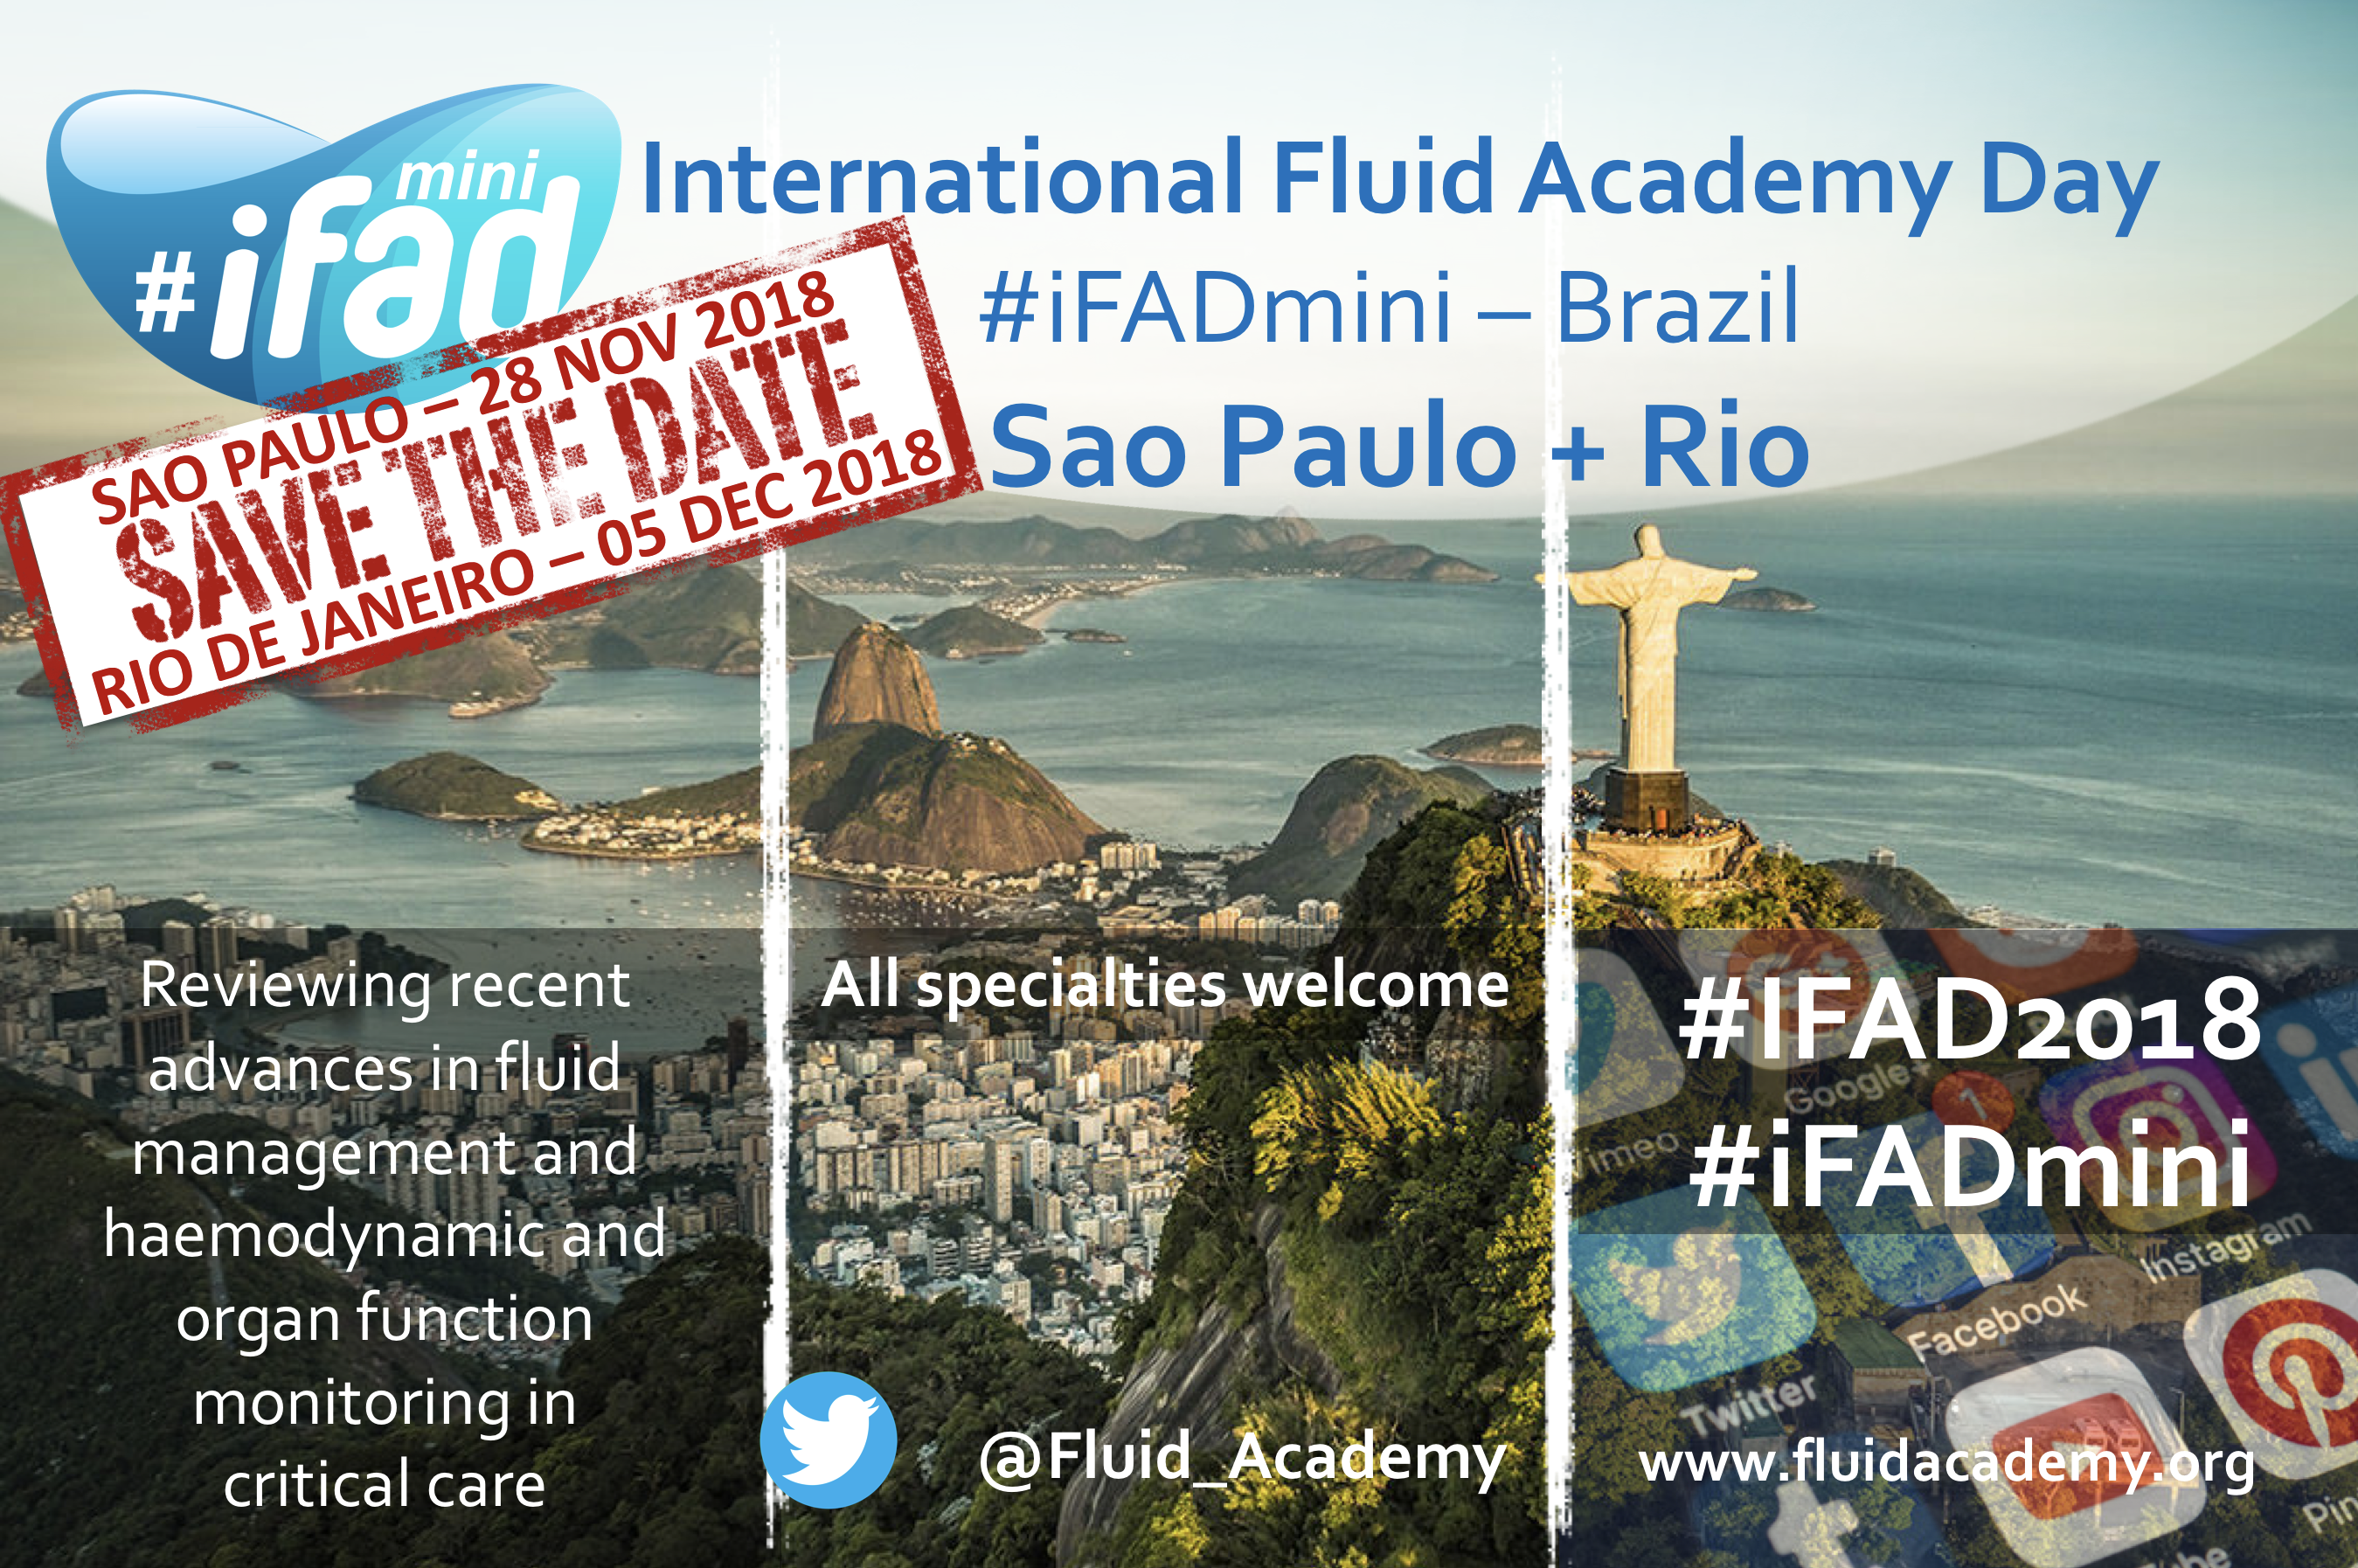 #iFADmini in Brazil (SP and Rio)